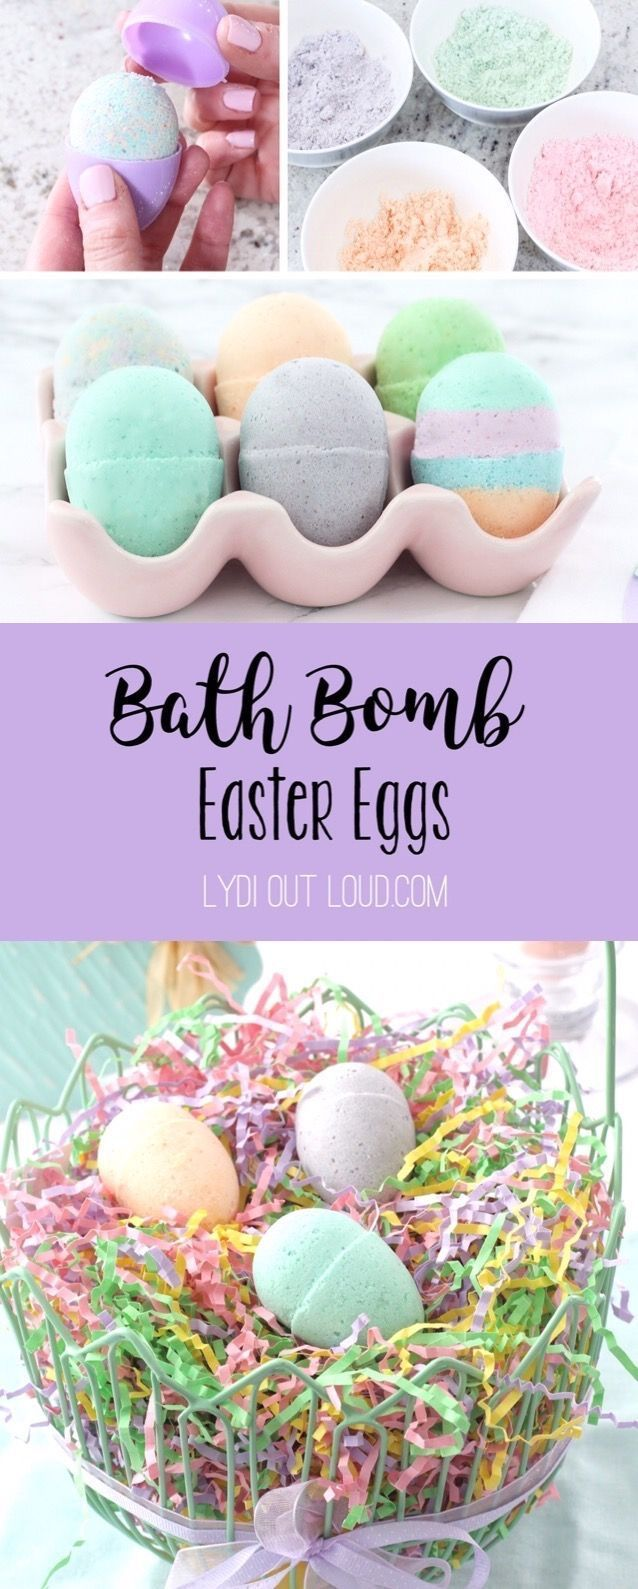 Diy bath bomb easter eggs diy baths bath bomb and easter baskets negle Images